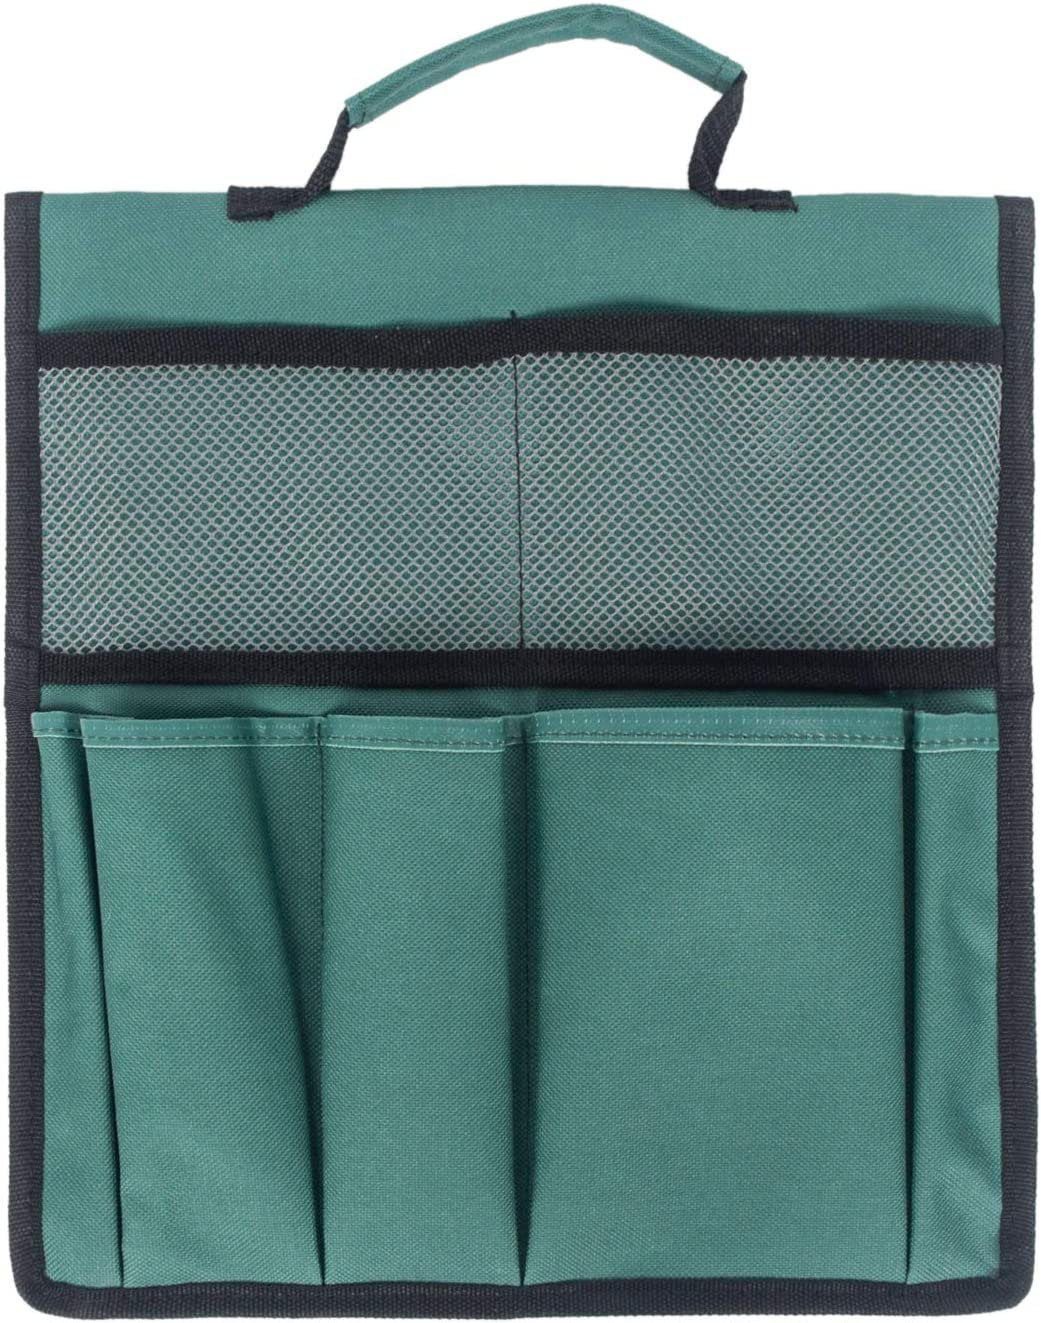 Portable Garden Foldable Kneeler Seat Tool Bag Outdoor Work Cart Storage Pouch (Green)